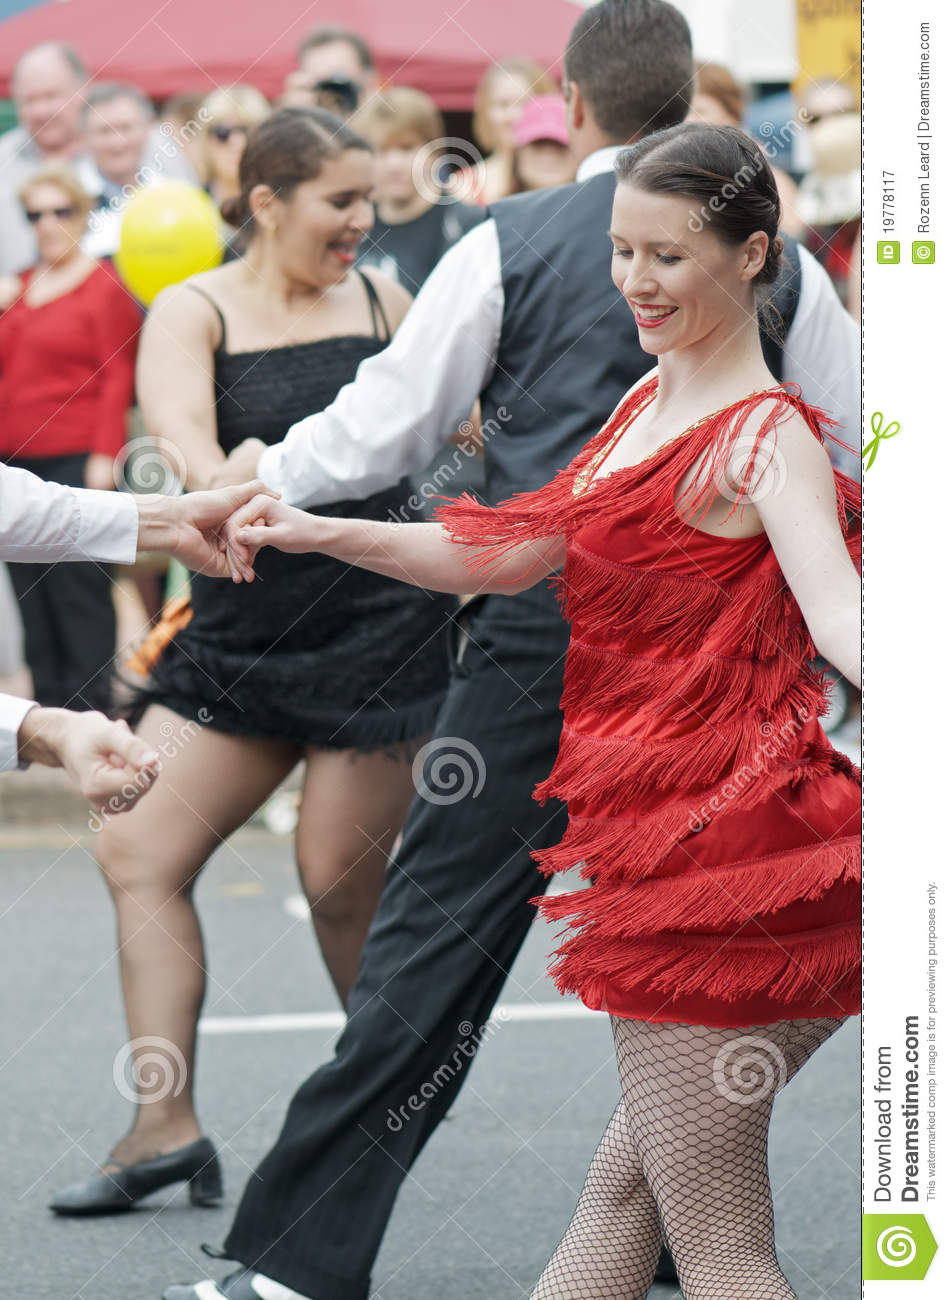 Charleston Street Dancing editorial photography  Image of